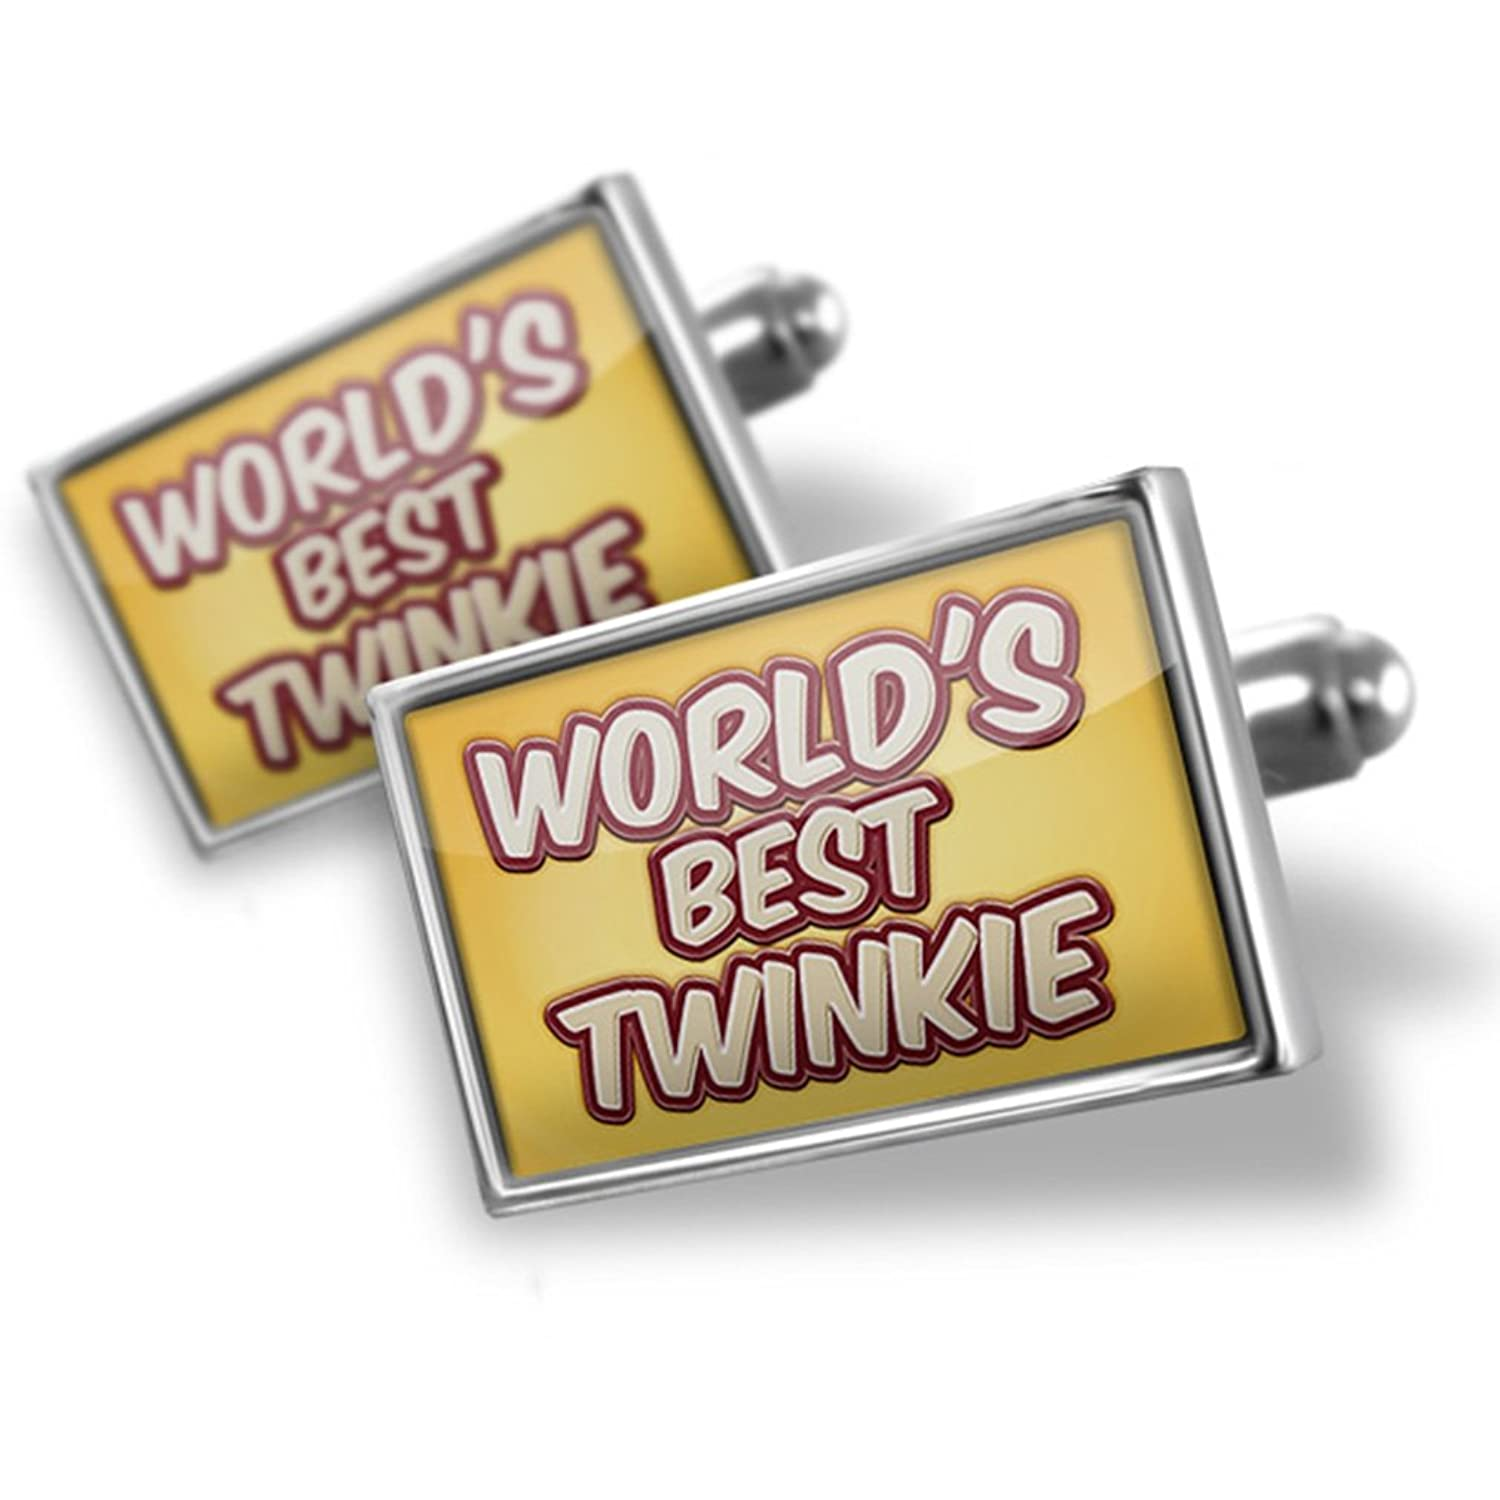 Cufflinks Worlds best Twinkie, happy yellow - Neonblond